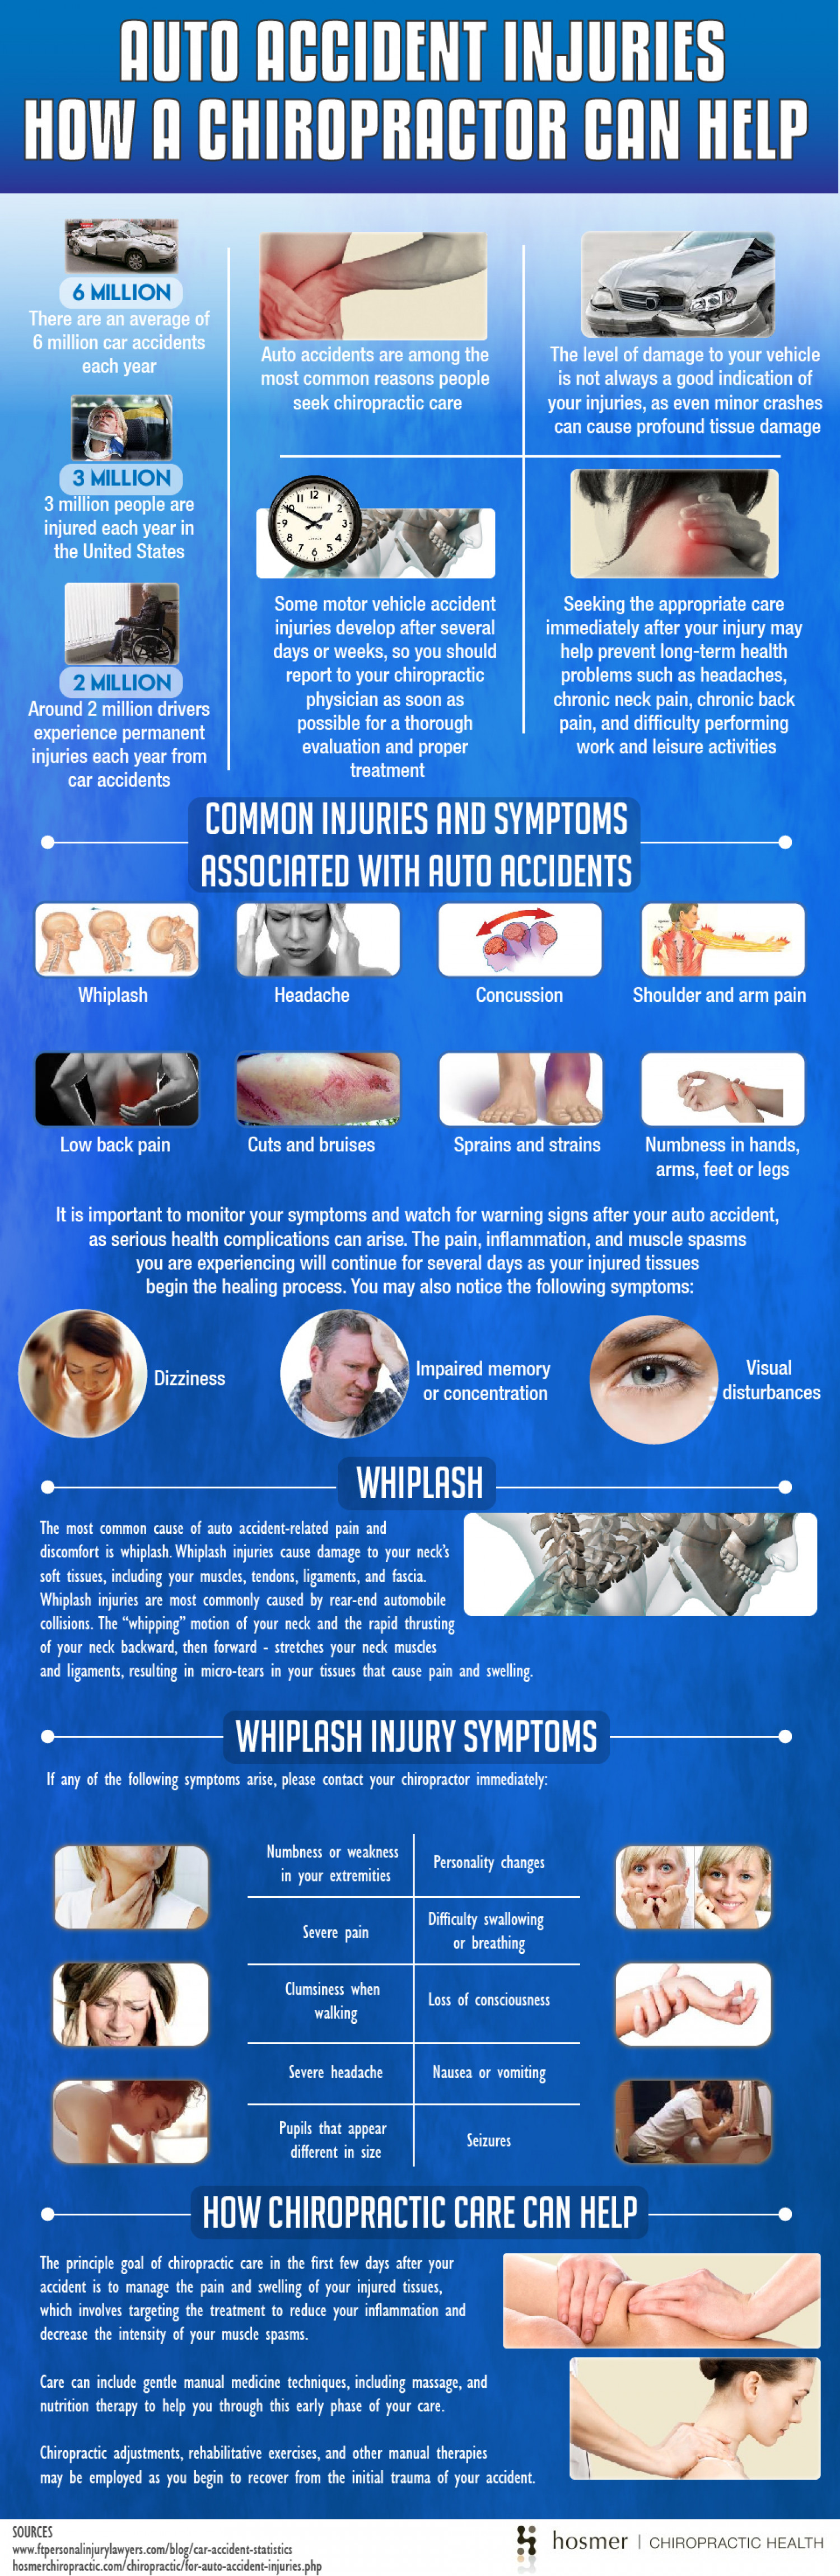 Auto Accident Injuries - How a Chiropractor Can Help Infographic